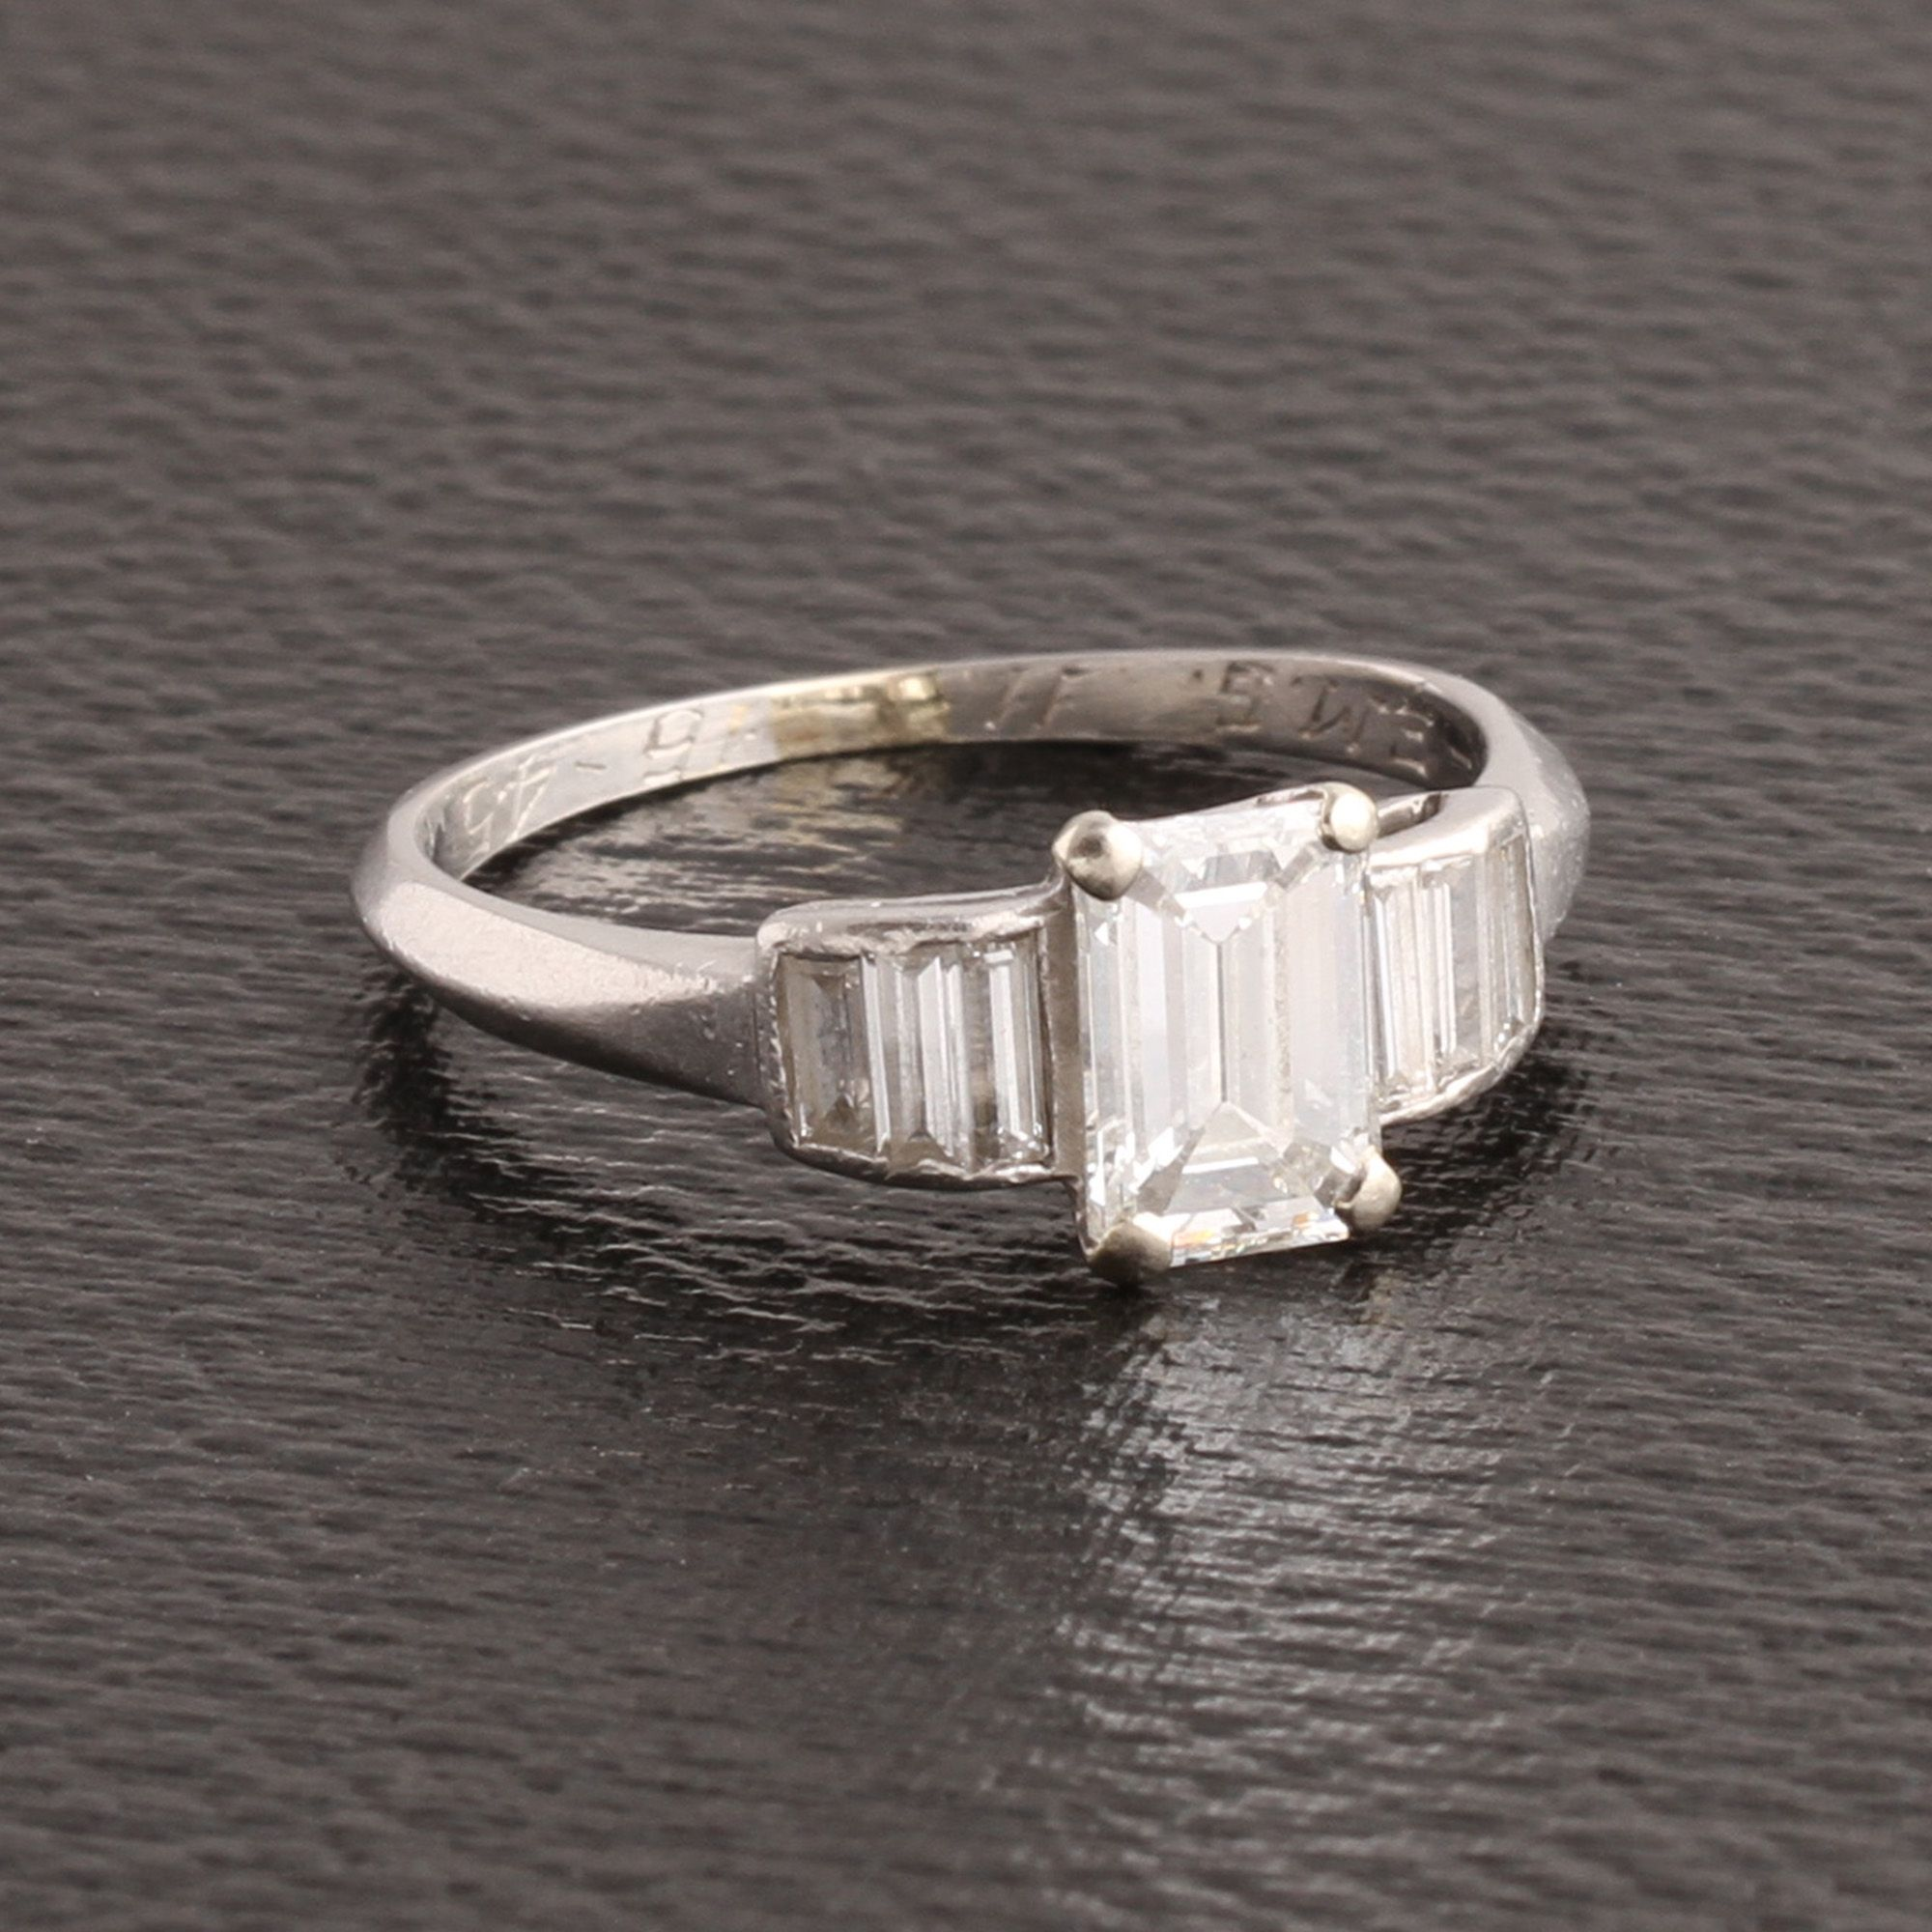 1940s 1ct Emerald Cut Engagement Ring with Baguette Diamond Shoulders